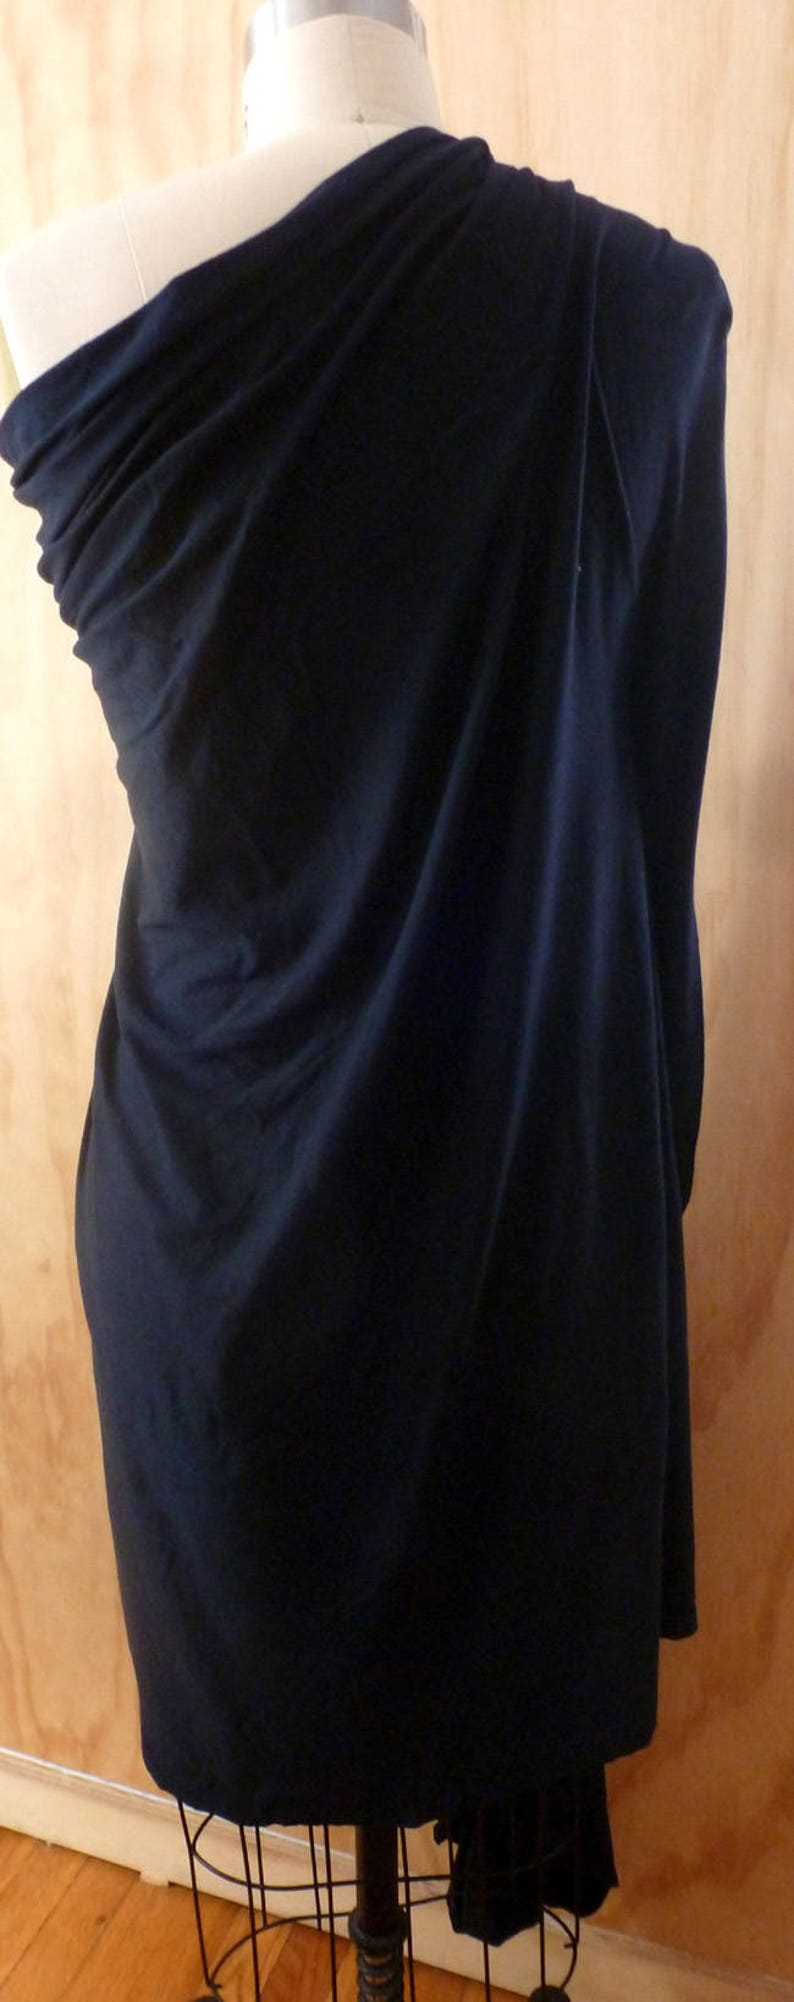 Black draped long one shoulder top with detail ruching